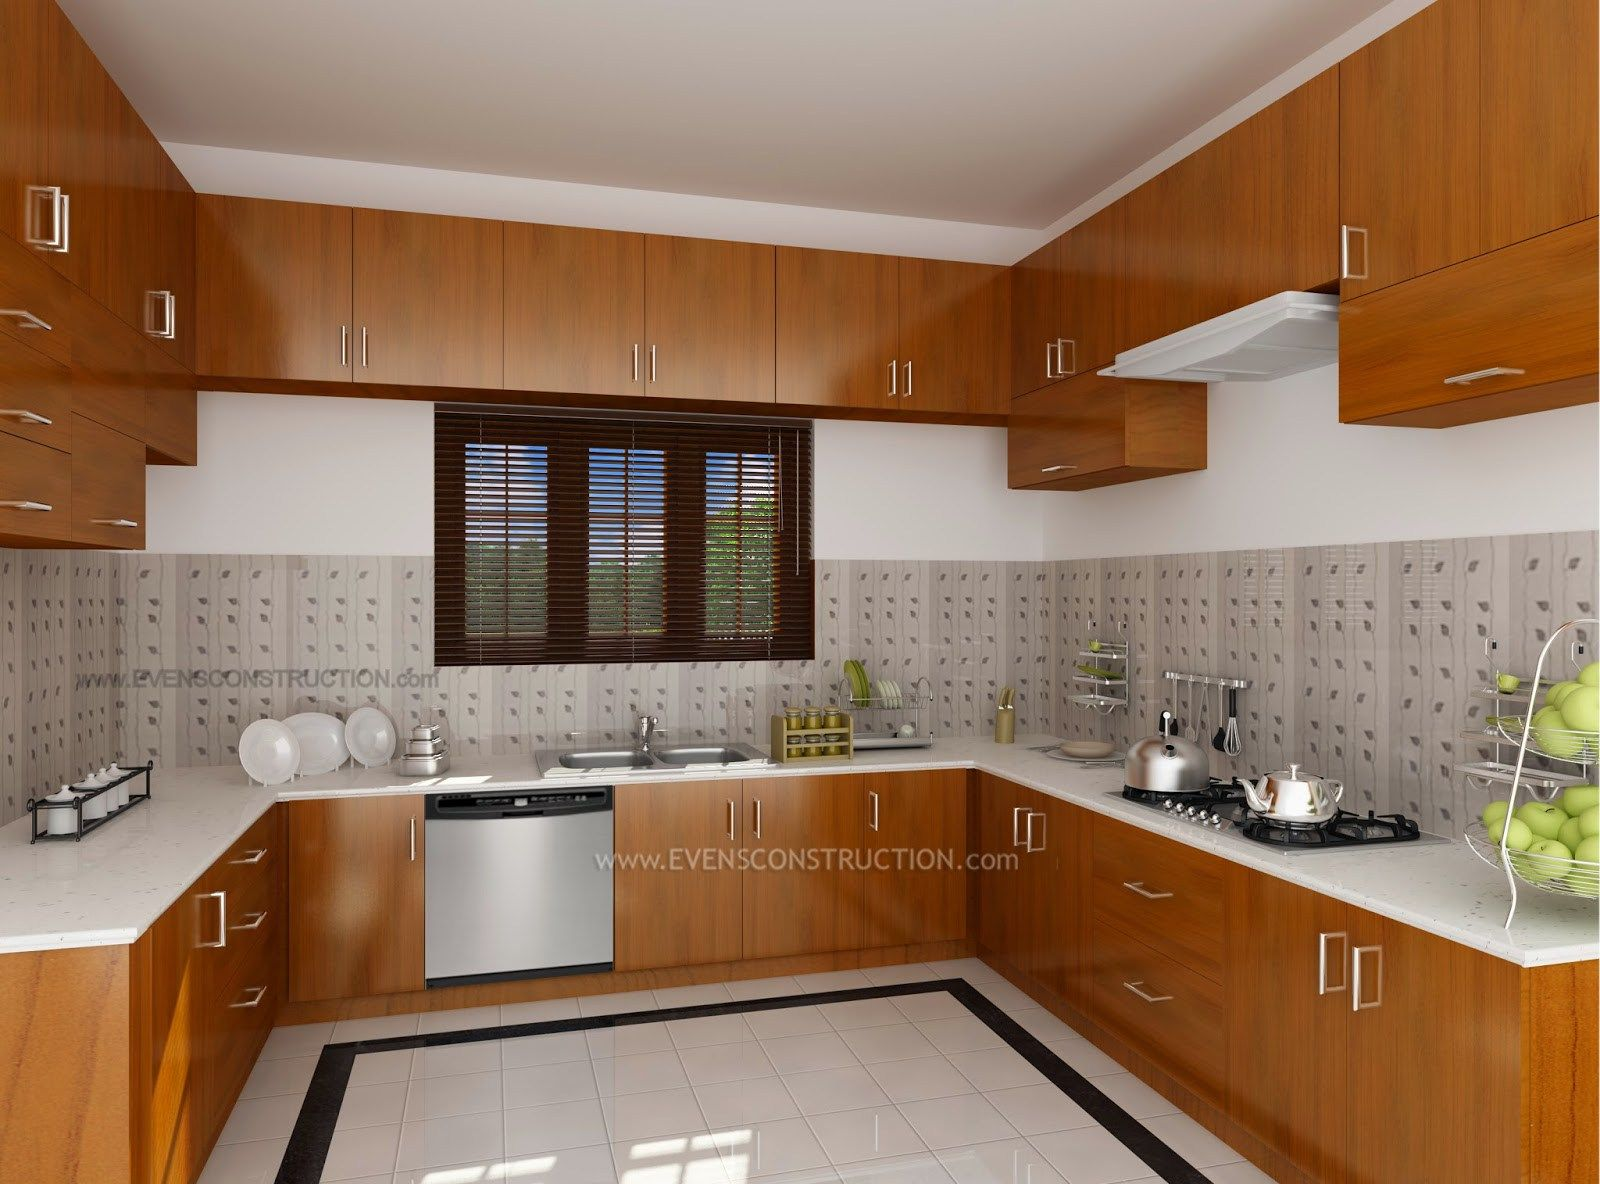 Captivating Design Interior Kitchen Home Kerala Modern House Kitchen Kitchen Dining  Kitchen Interior Designs Subin Surendran Architects